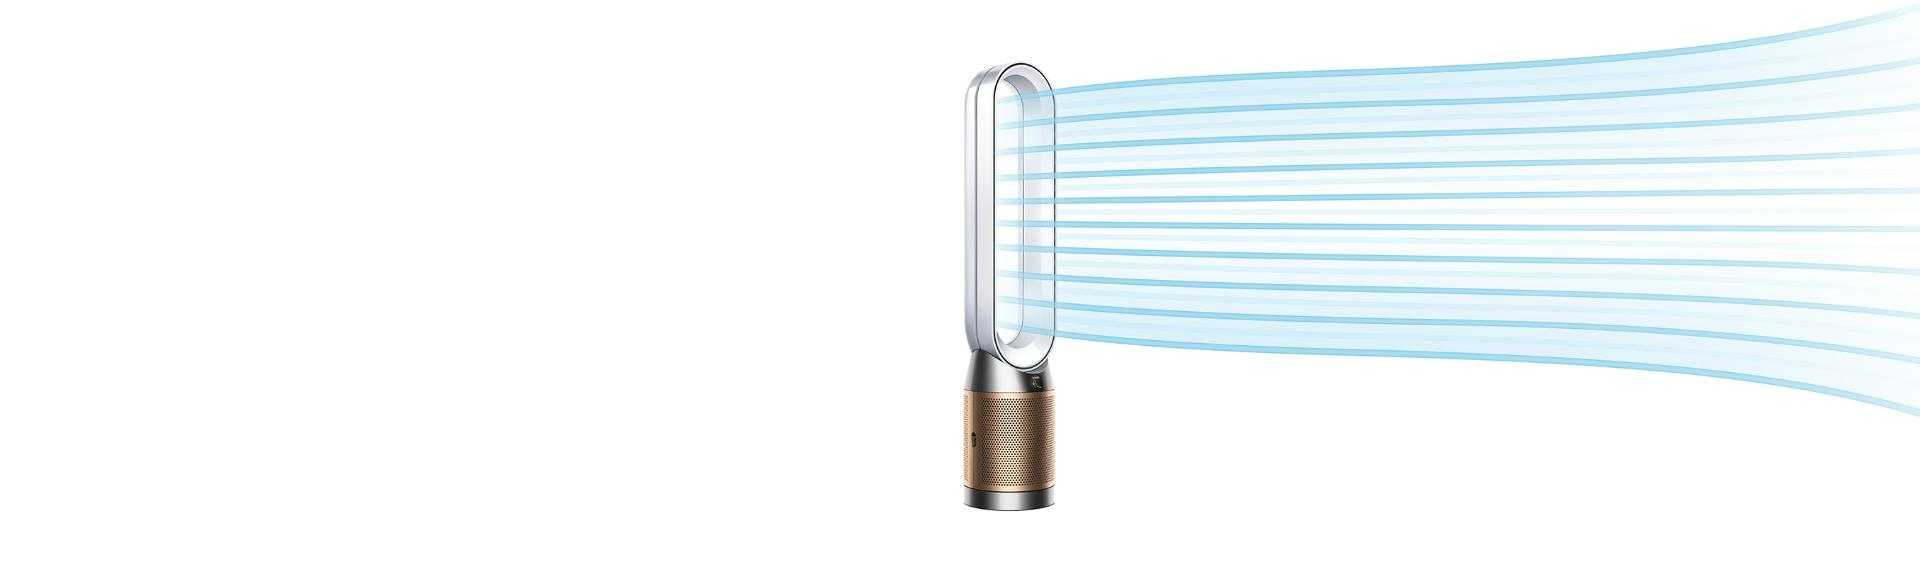 Dyson HEPA Cool Formaldehyde projecting purified air